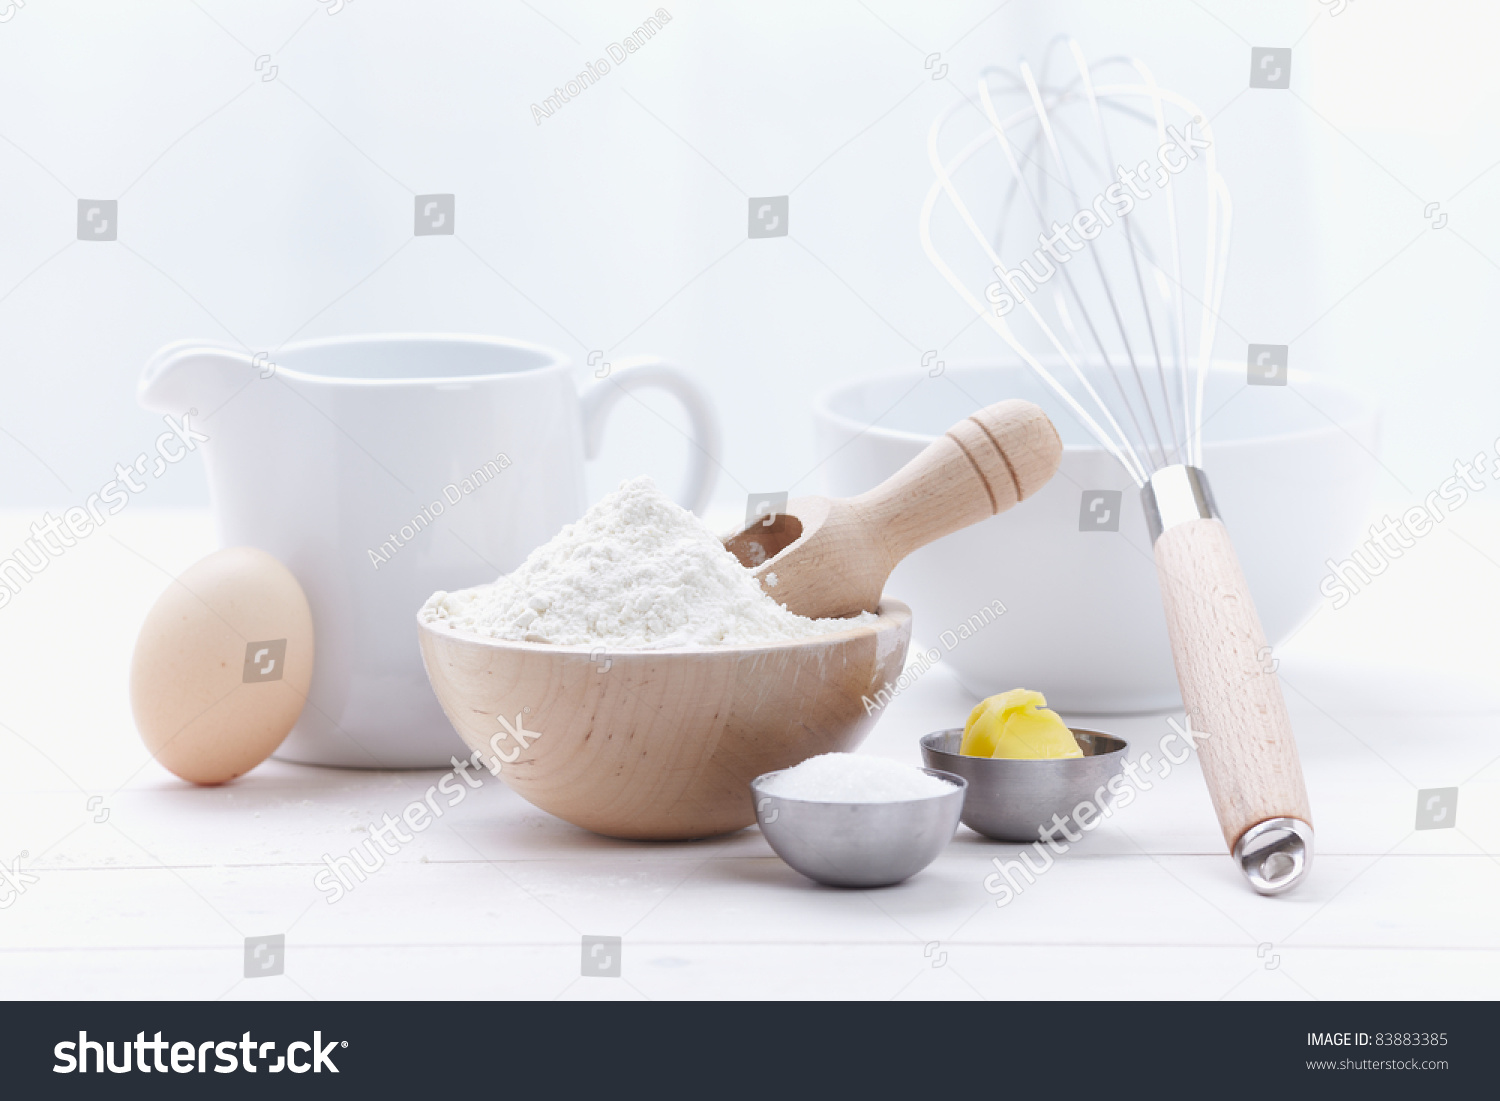 Ingredients tools make cake flour butter stock photo for What are the ingredients to make a cake